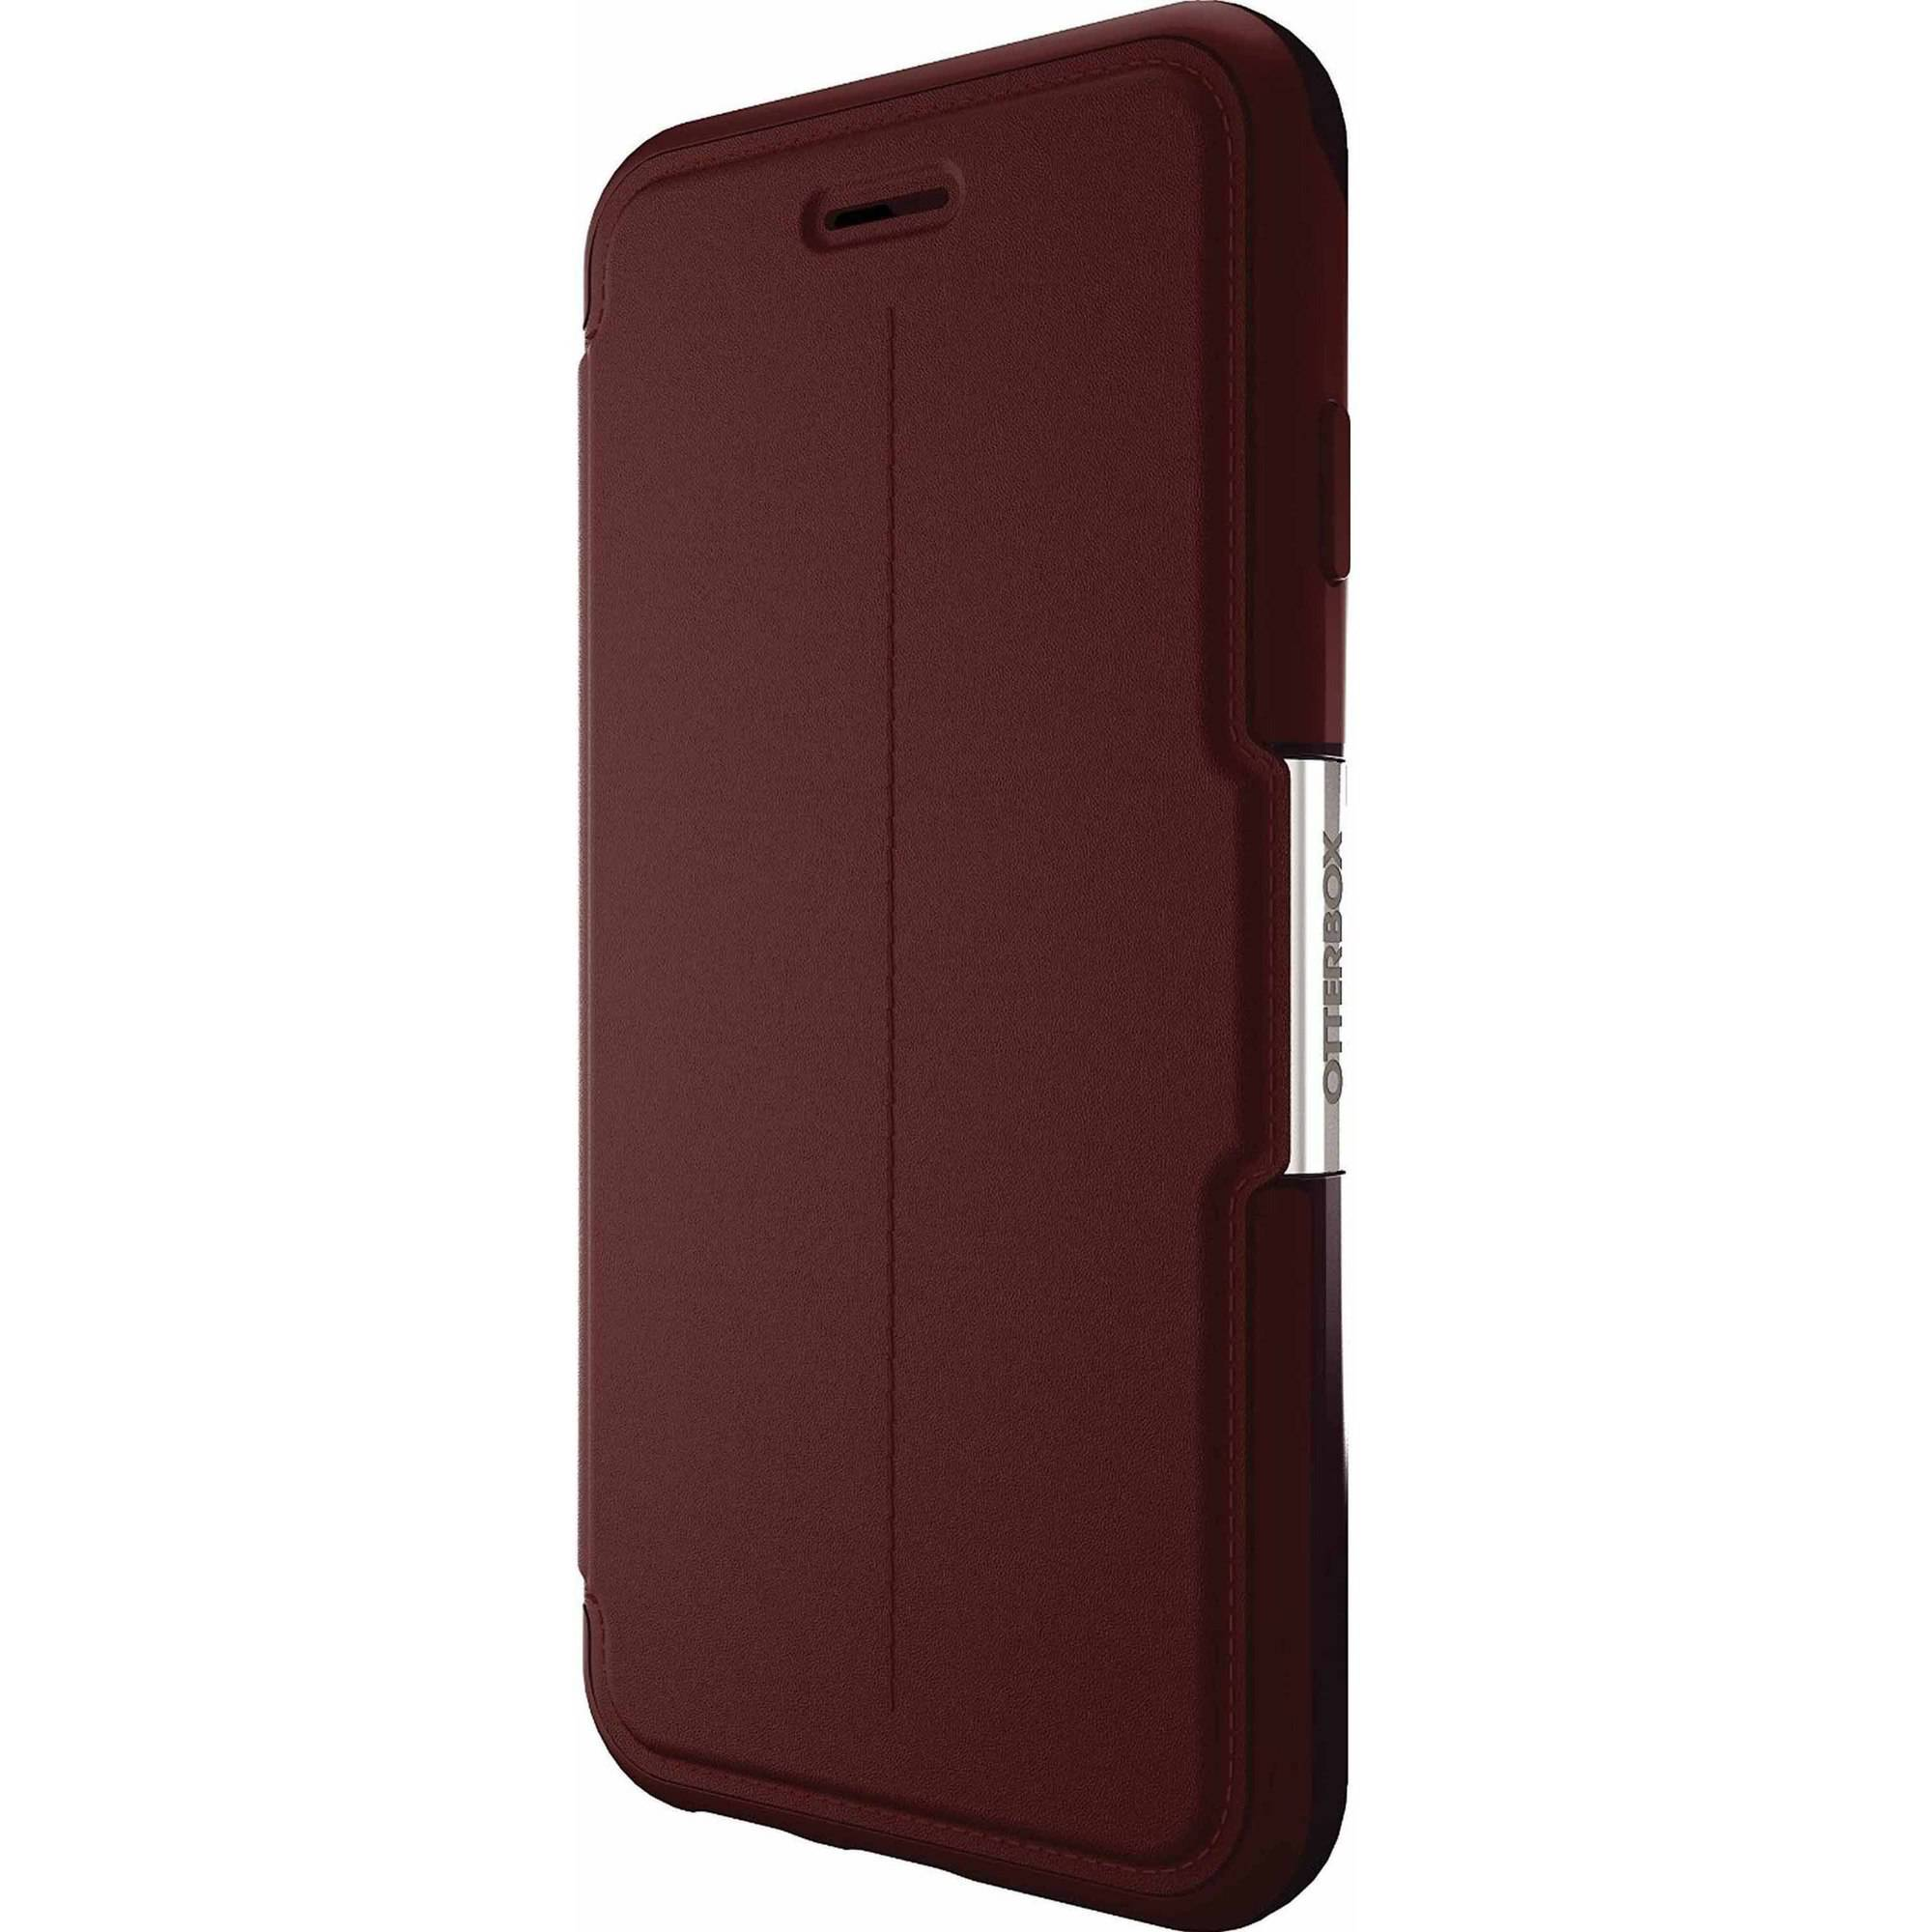 Ot otterbox iphone 6s plus covers - Iphone 6 Otterbox Strada Series Carrying Case For Apple Iphone 6 Assorted Colors Walmart Com